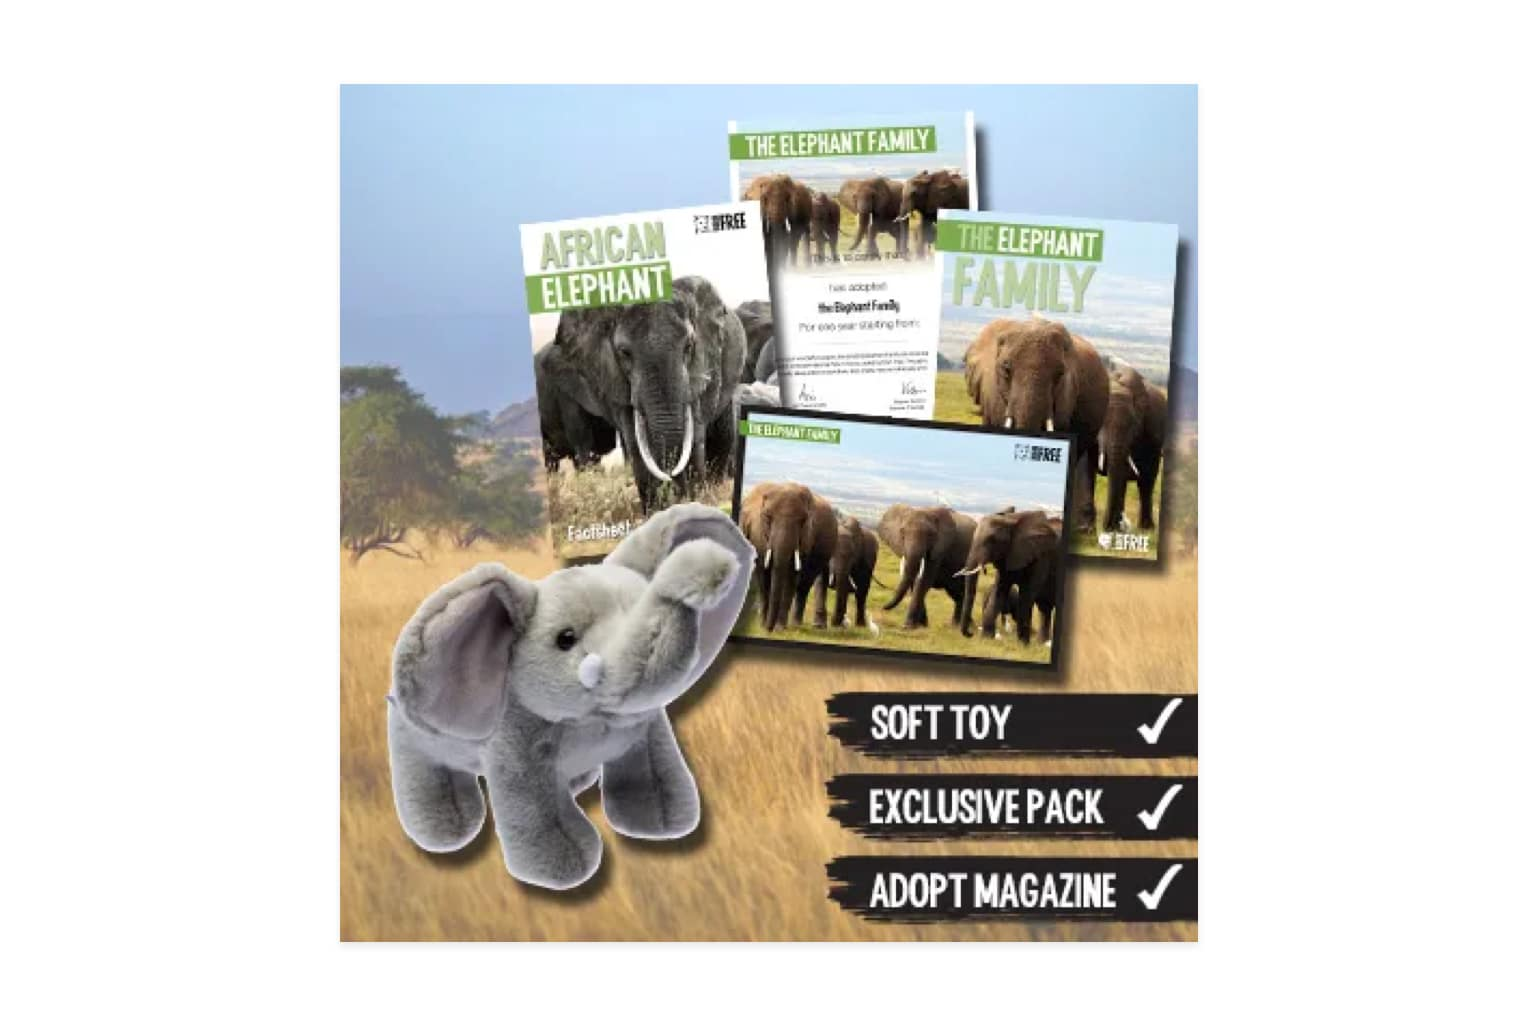 Charity Gifts from Born Free